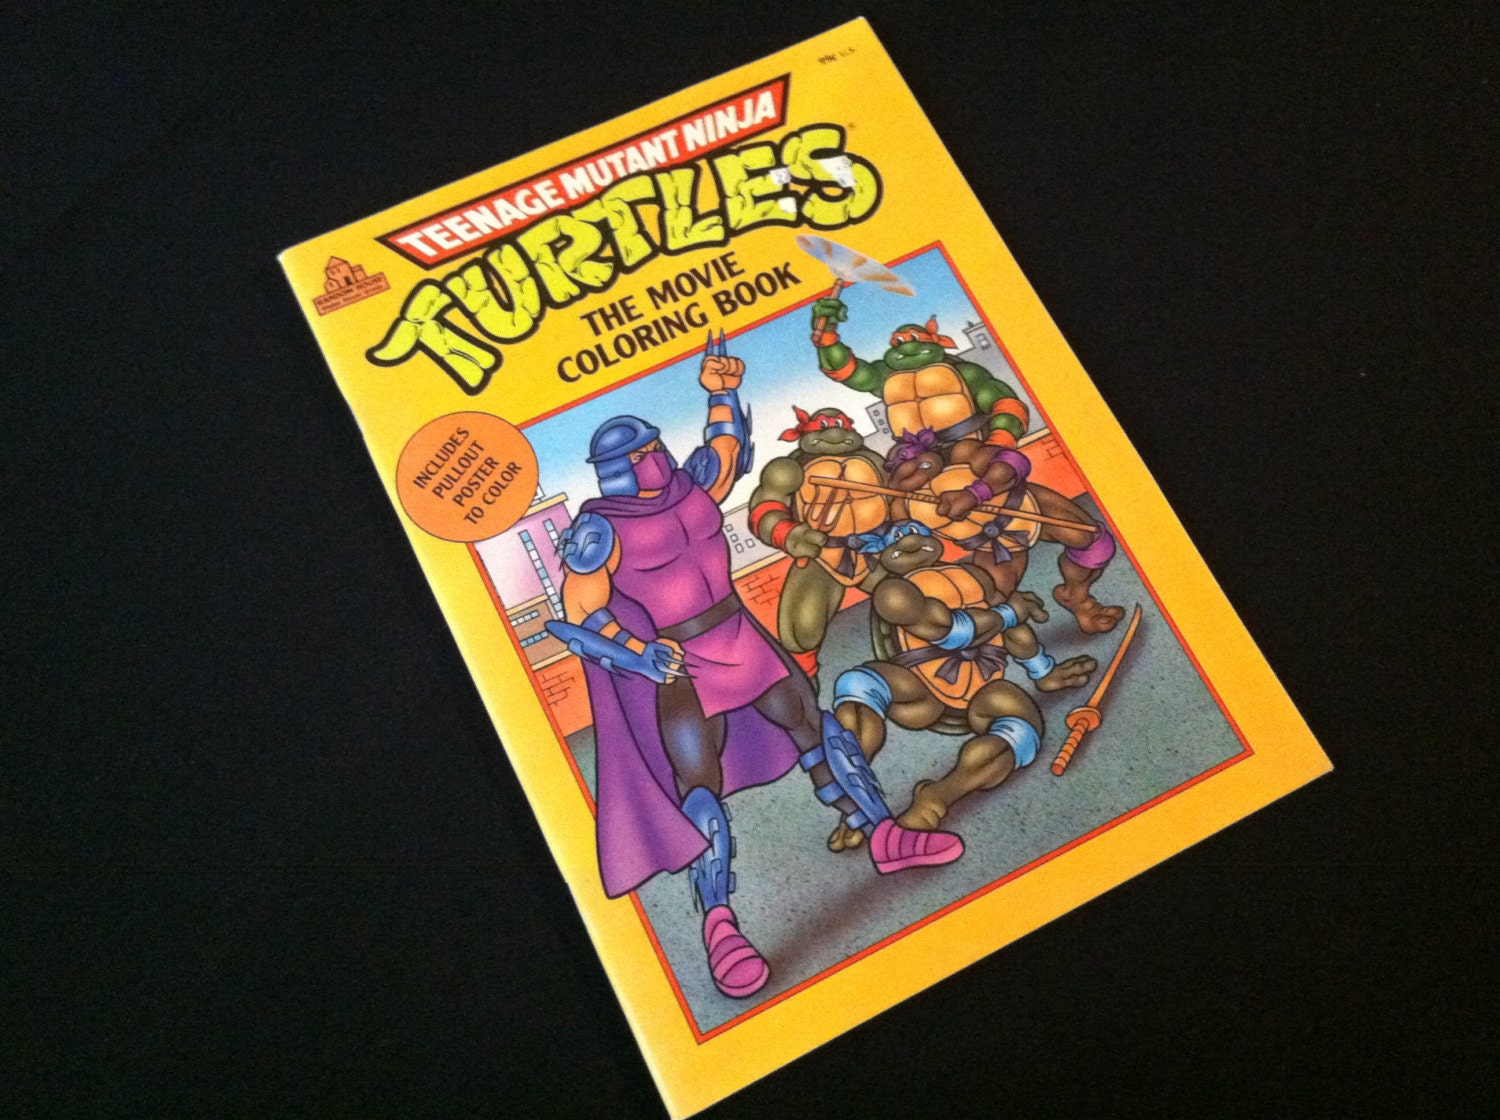 tmnt coloring book new age mutant ninja turtles - Teenage Mutant Ninja Turtles Coloring Book